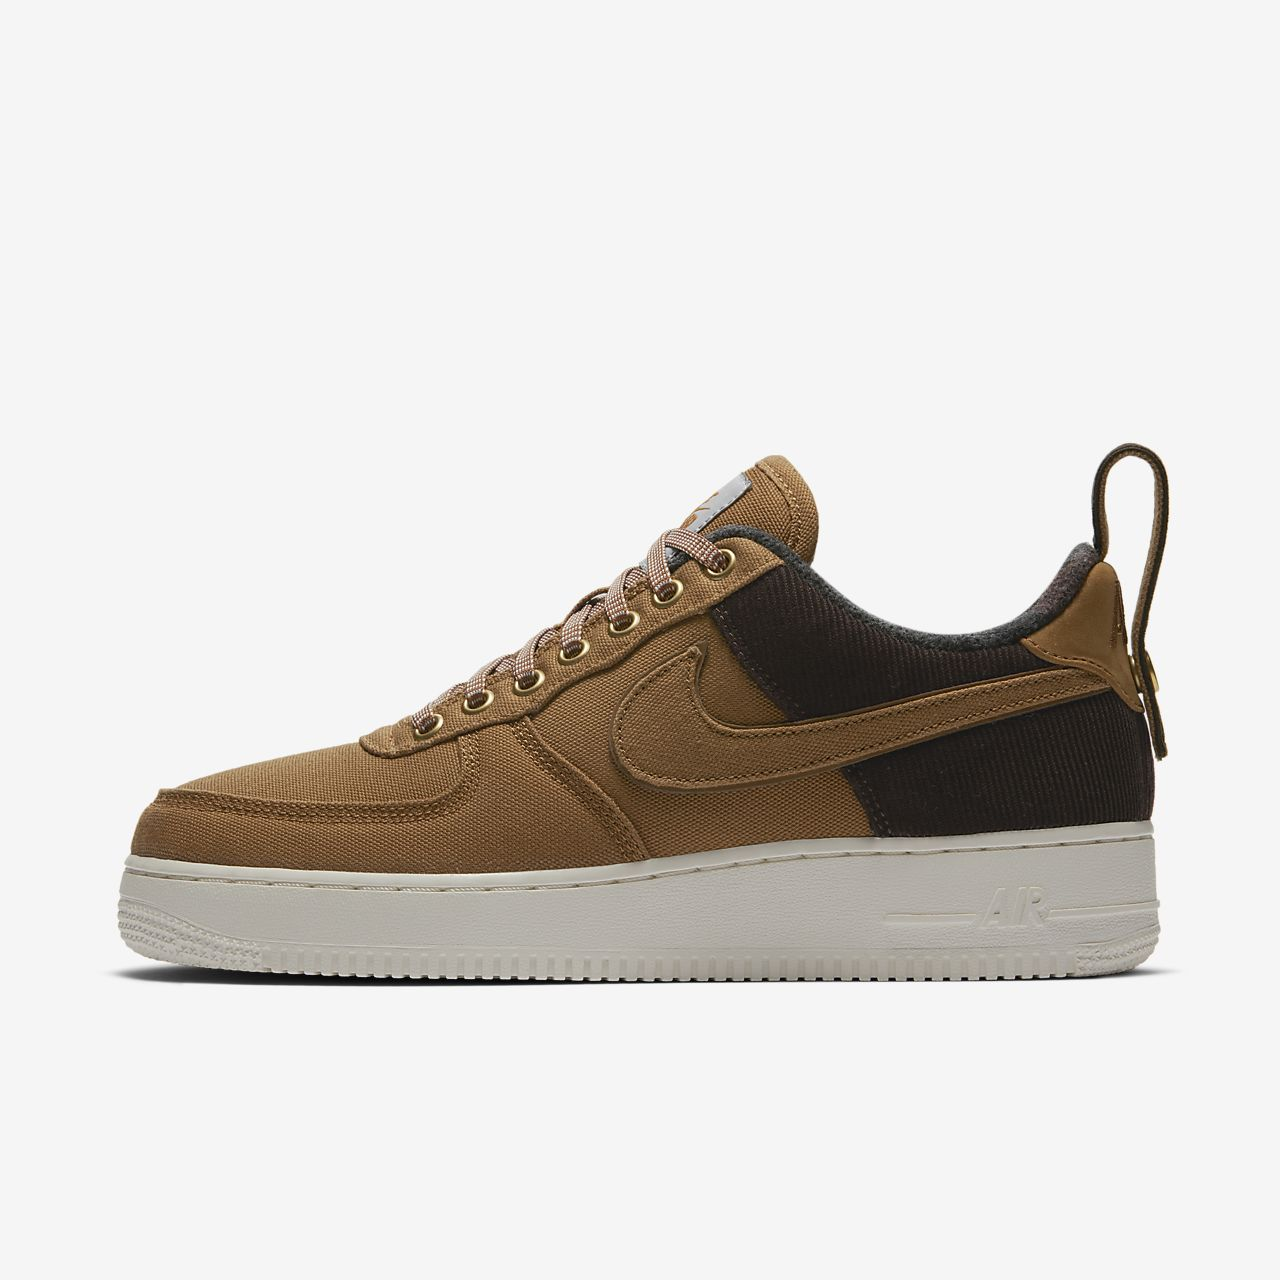 Chaussure Nike x Carhartt WIP Air Force 1 pour Homme